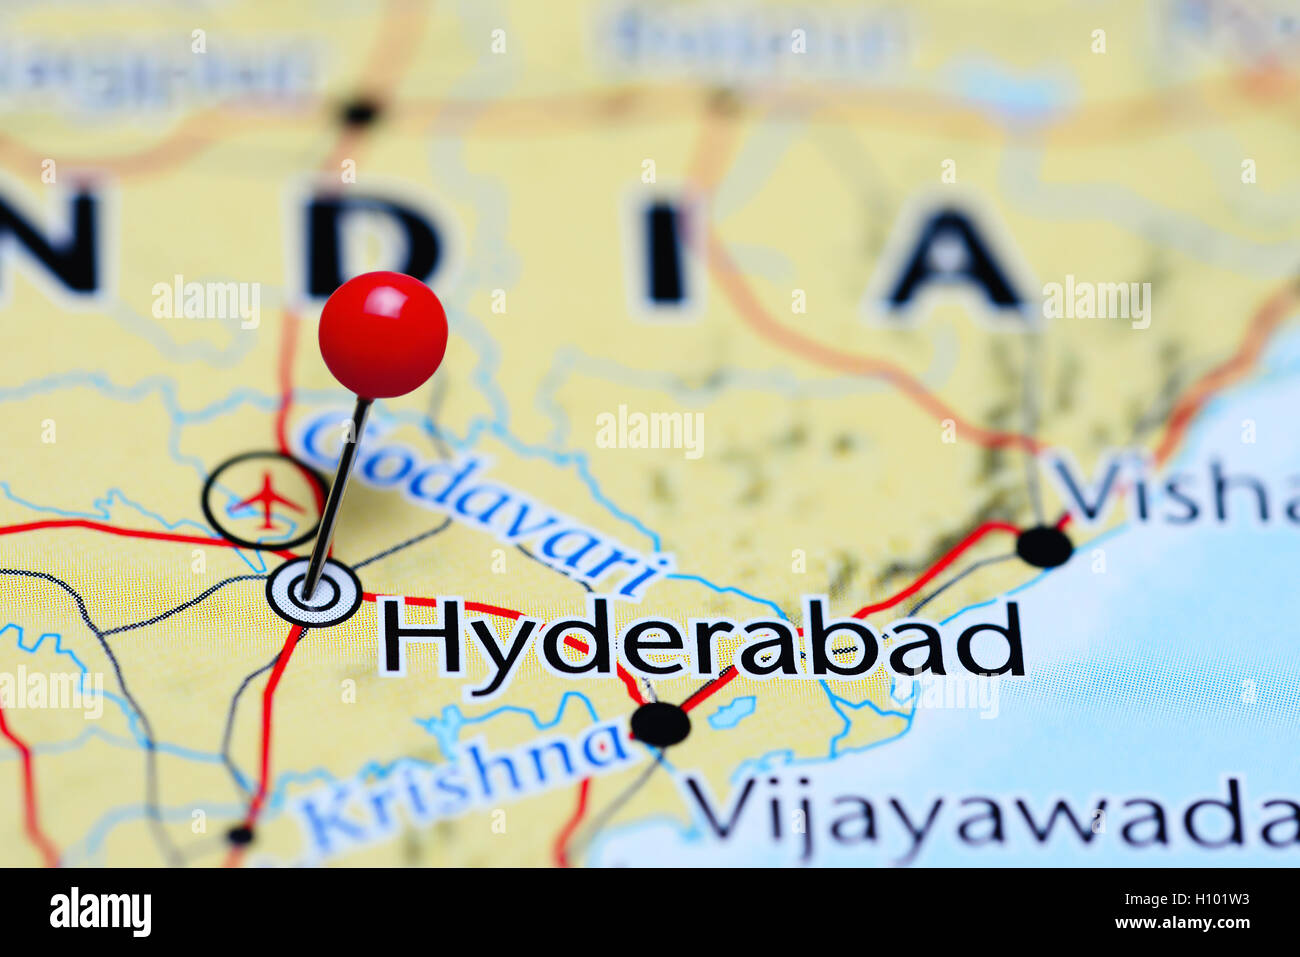 Hyderabad On India Map.Hyderabad Pinned On A Map Of India Stock Photo 121088719 Alamy